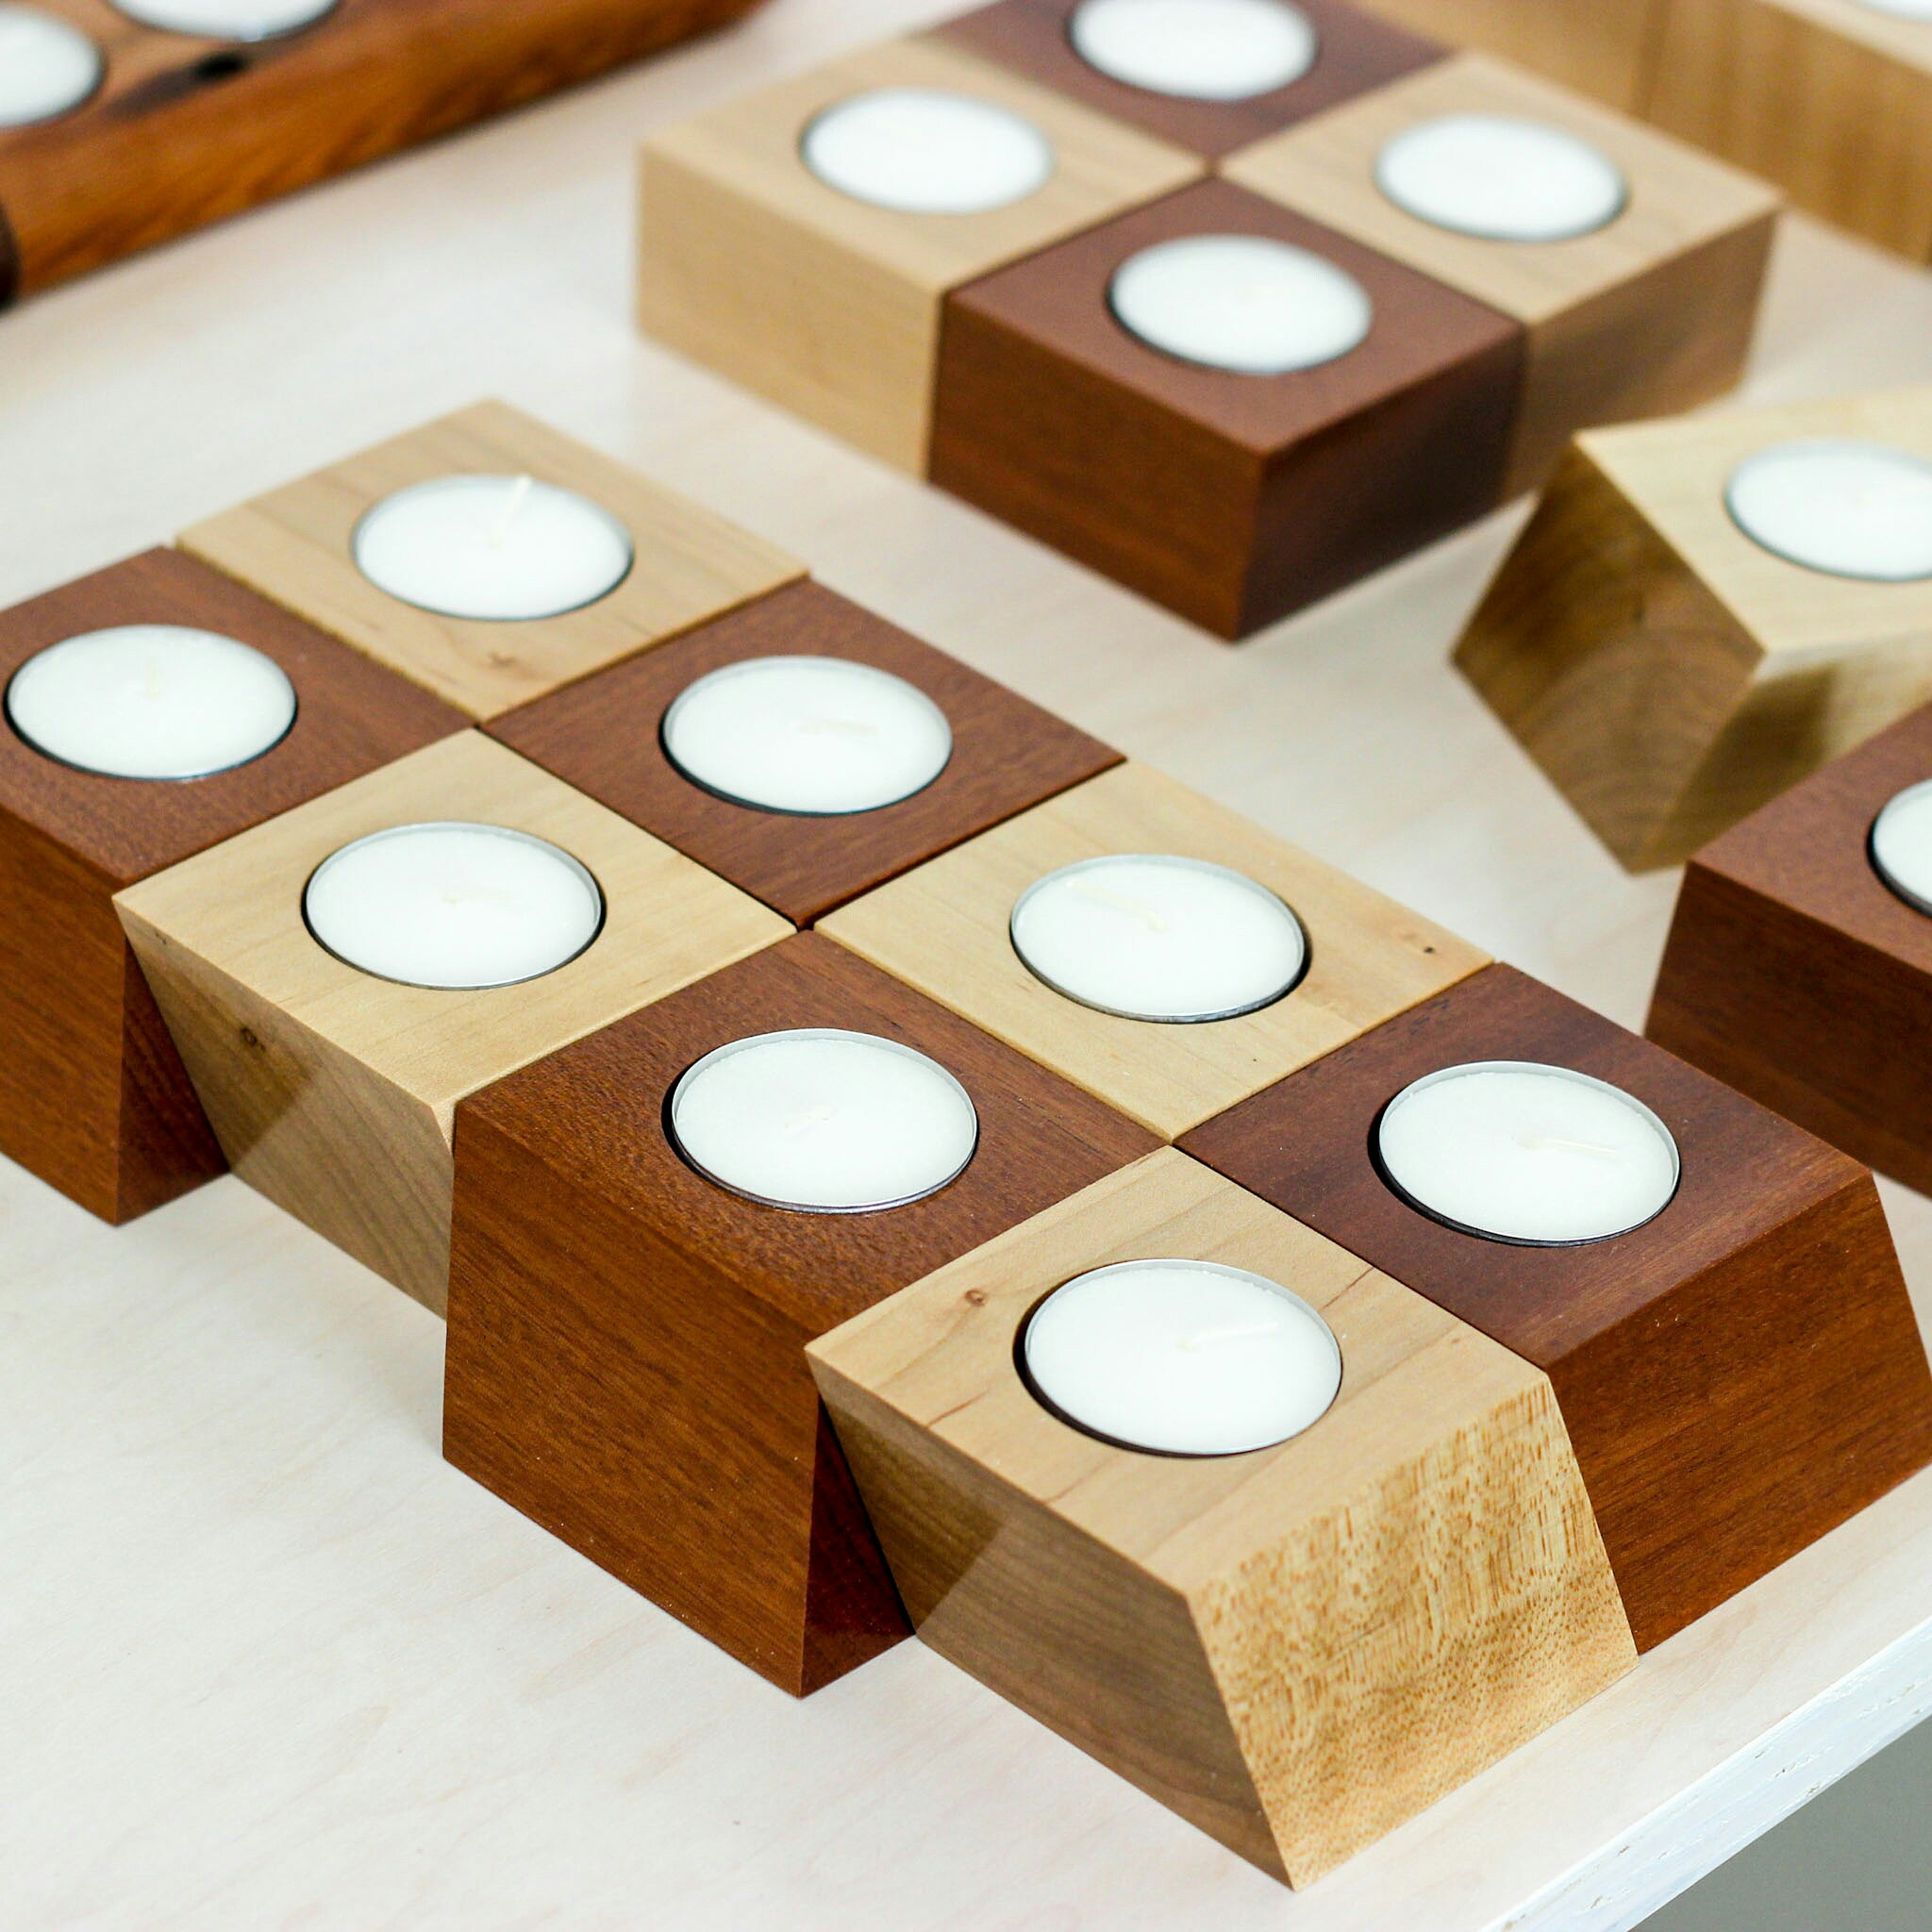 Parallelogram tea light holders